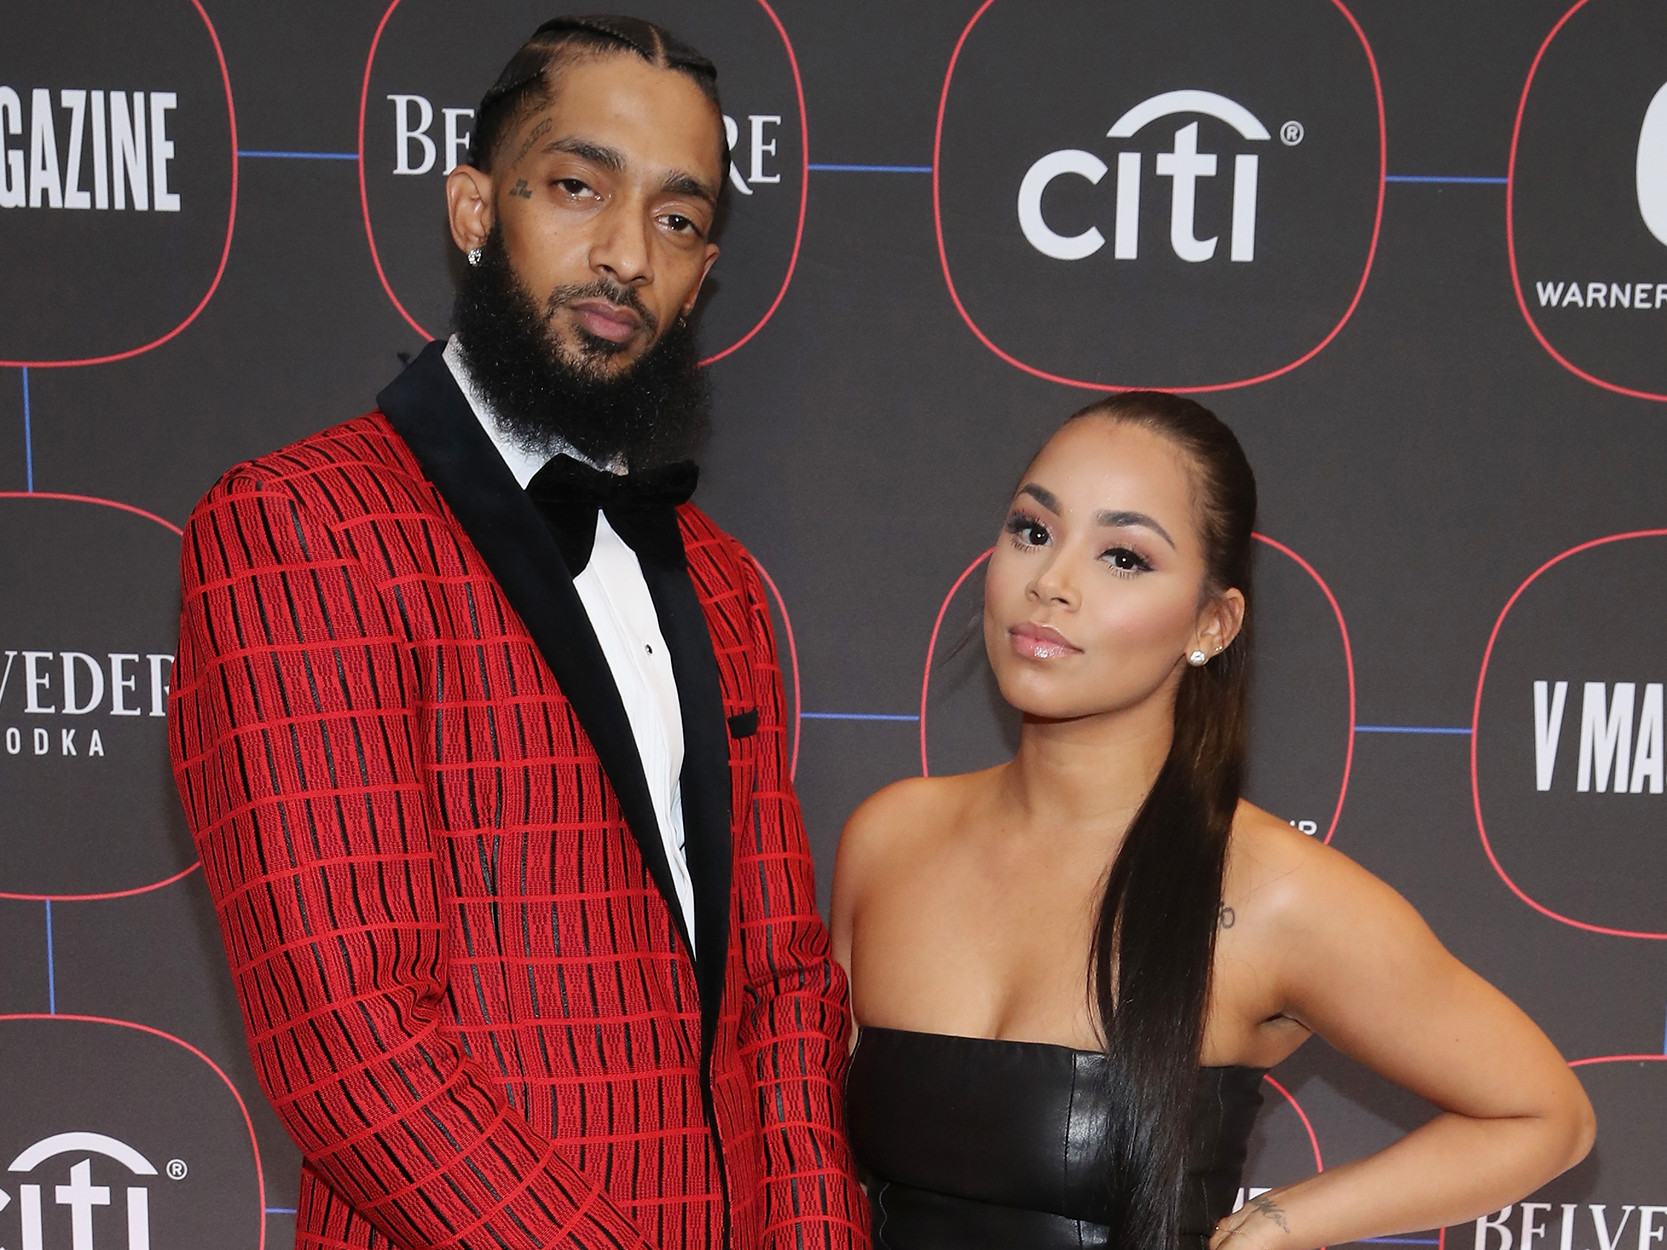 Lauren London shoots down speculation she's dating Diddy, says she's 'still' grieving late rapper Nipsey Hussle